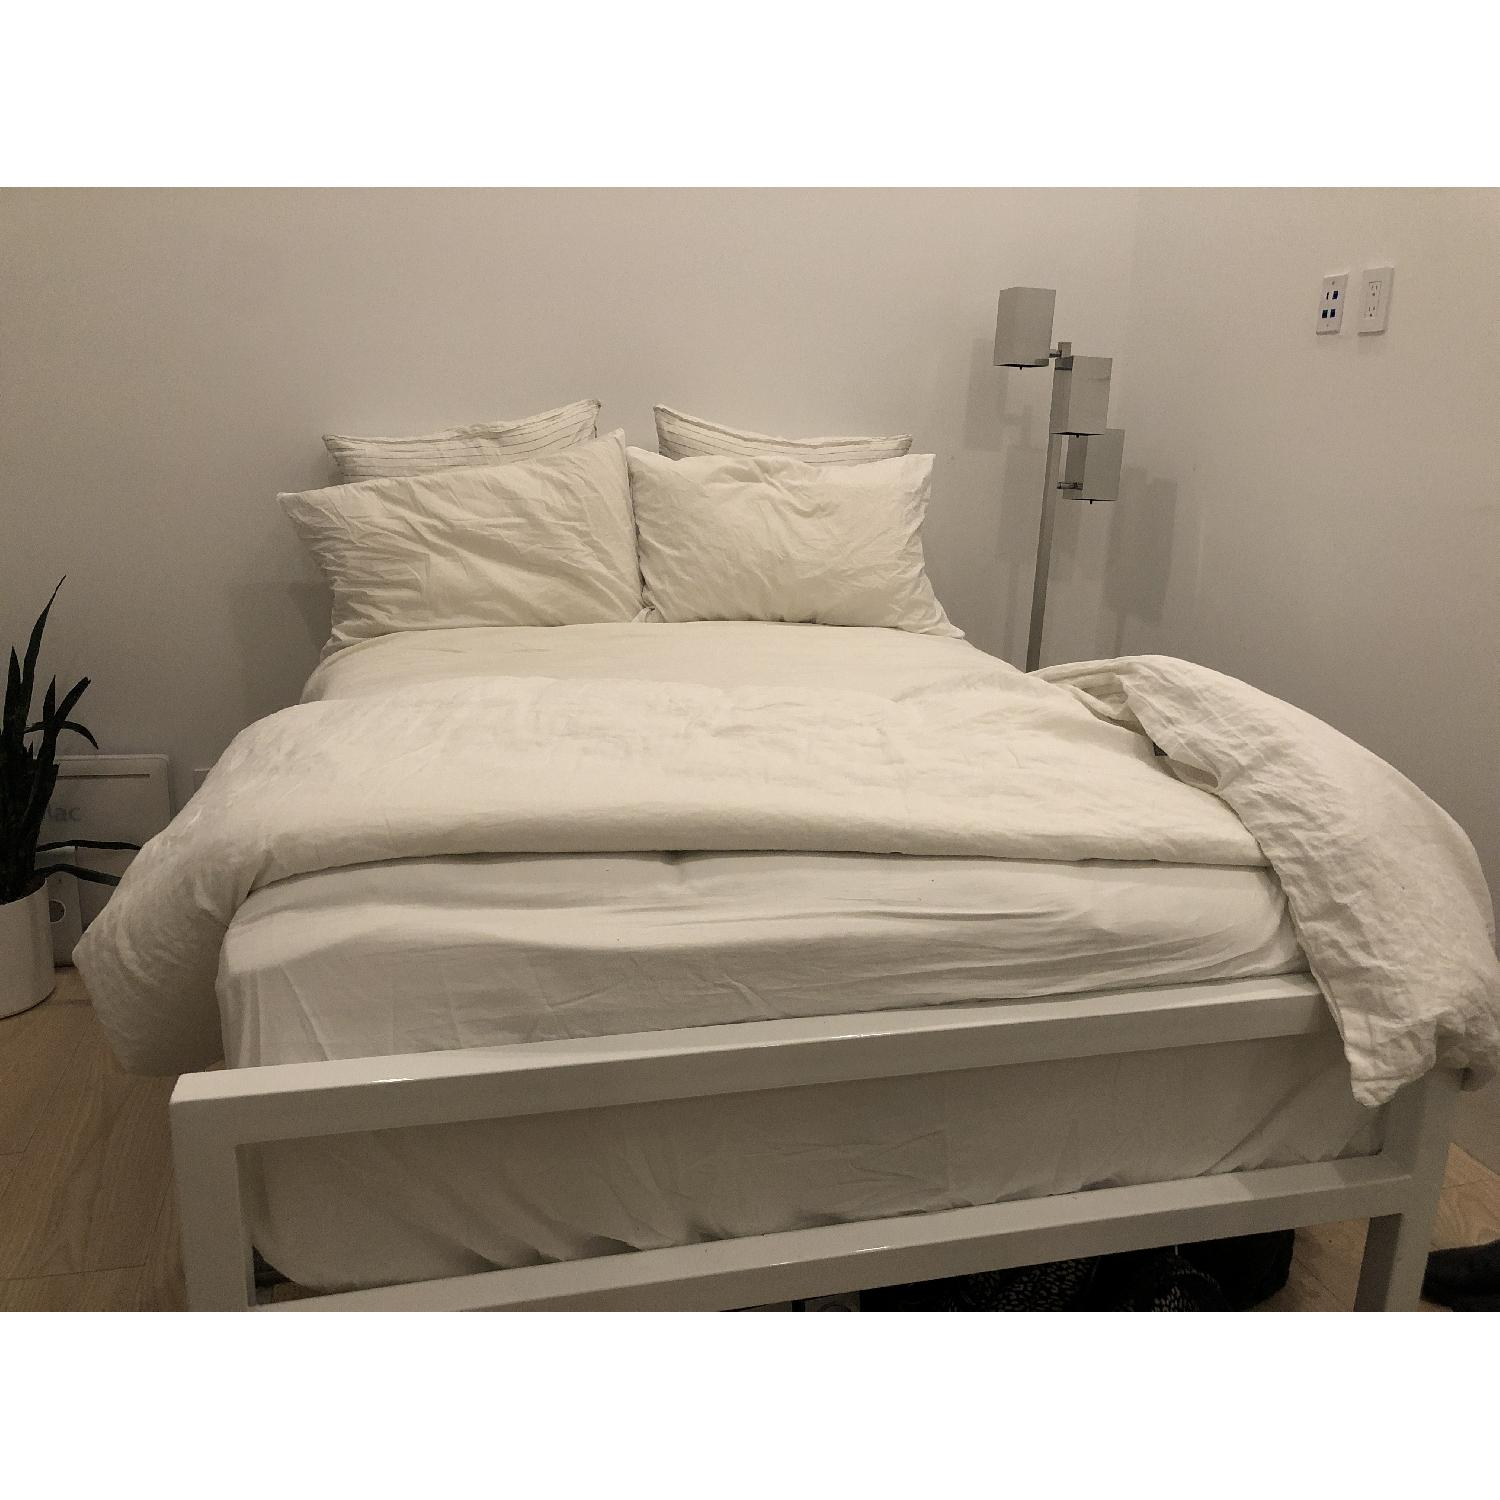 Room & Board Parsons White Tall Full Size Bed-1